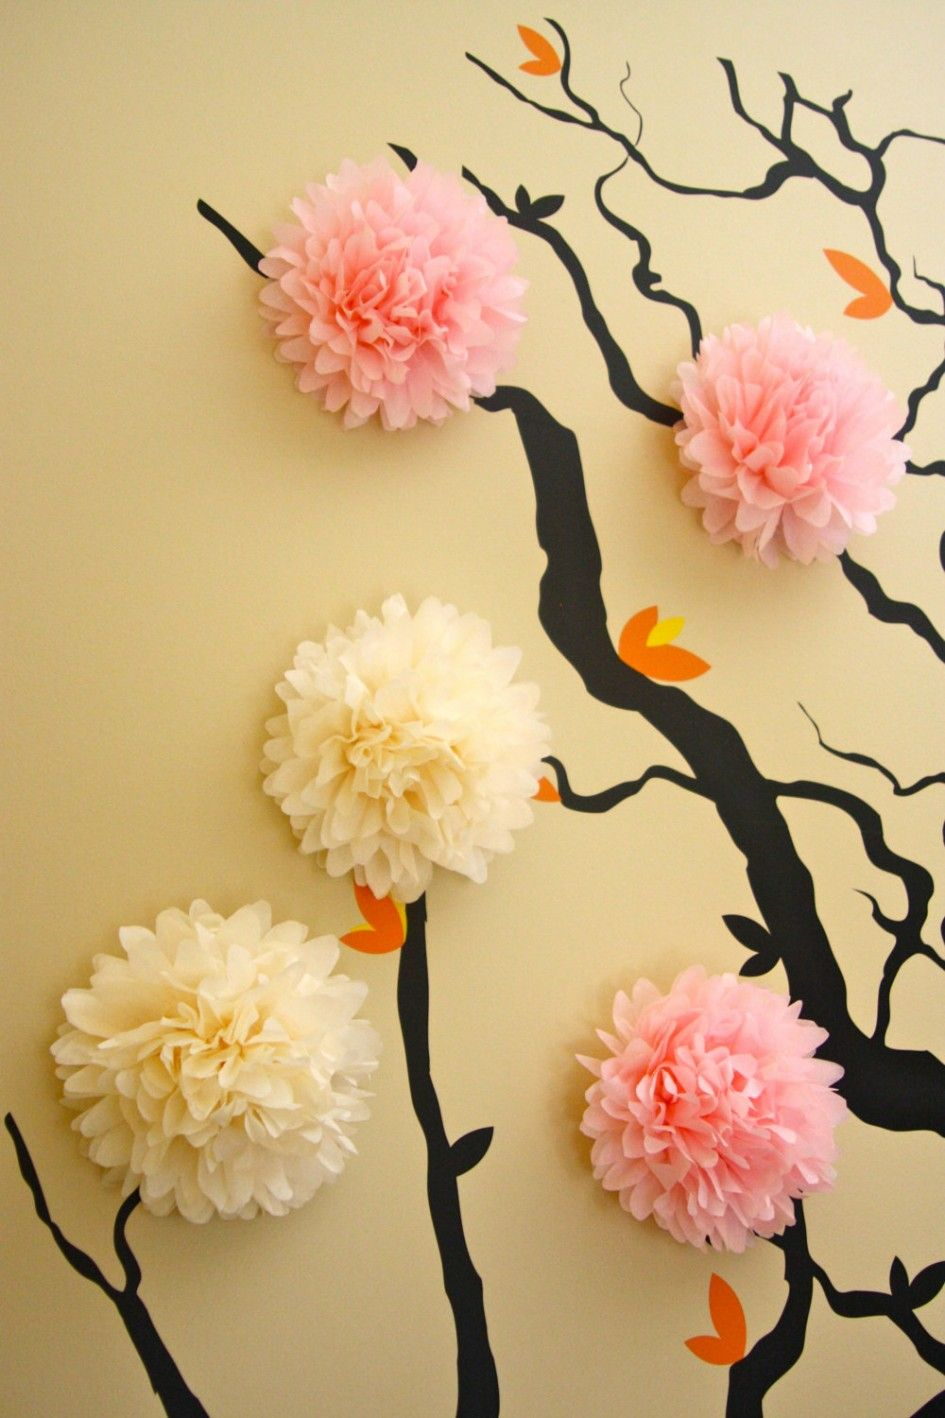 Apartment cool flower cherry blossom 3d wall mural baby nursery apartment cool flower cherry blossom 3d wall mural baby nursery decoration black branch wall decals amipublicfo Gallery